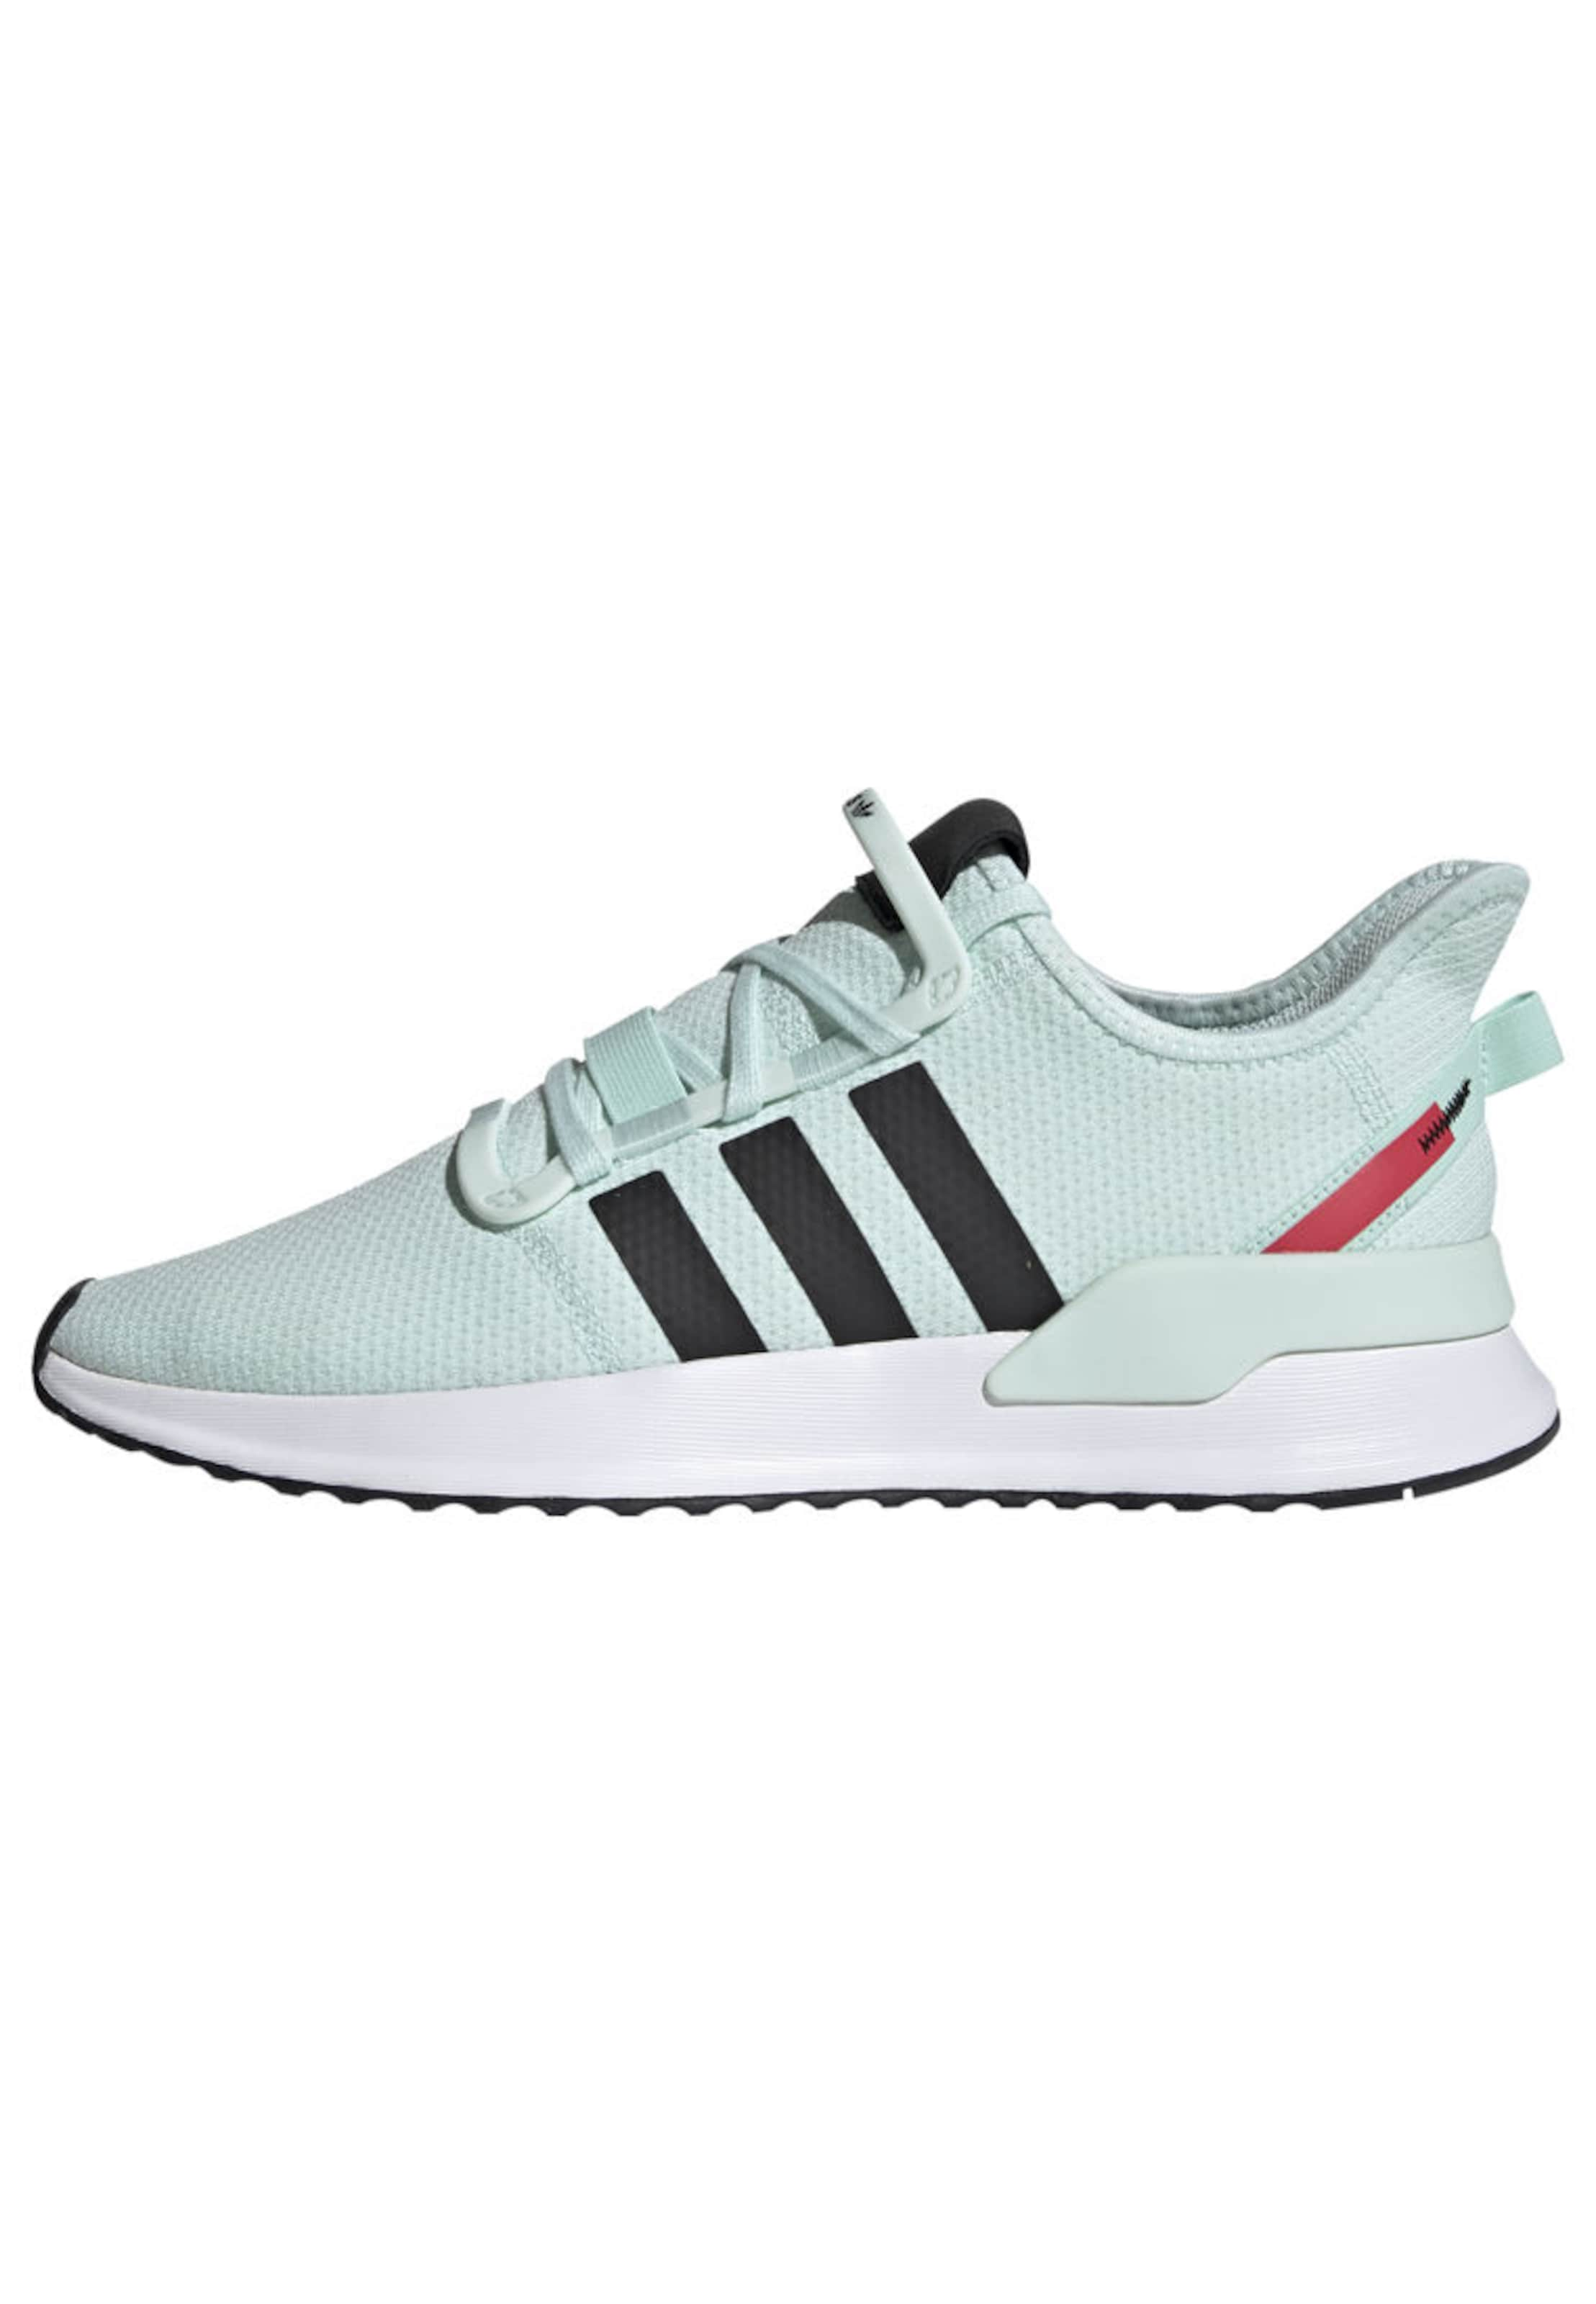 path Schuhe Adidas Originals Run' 'u MintSchwarz In 8wX0POnk